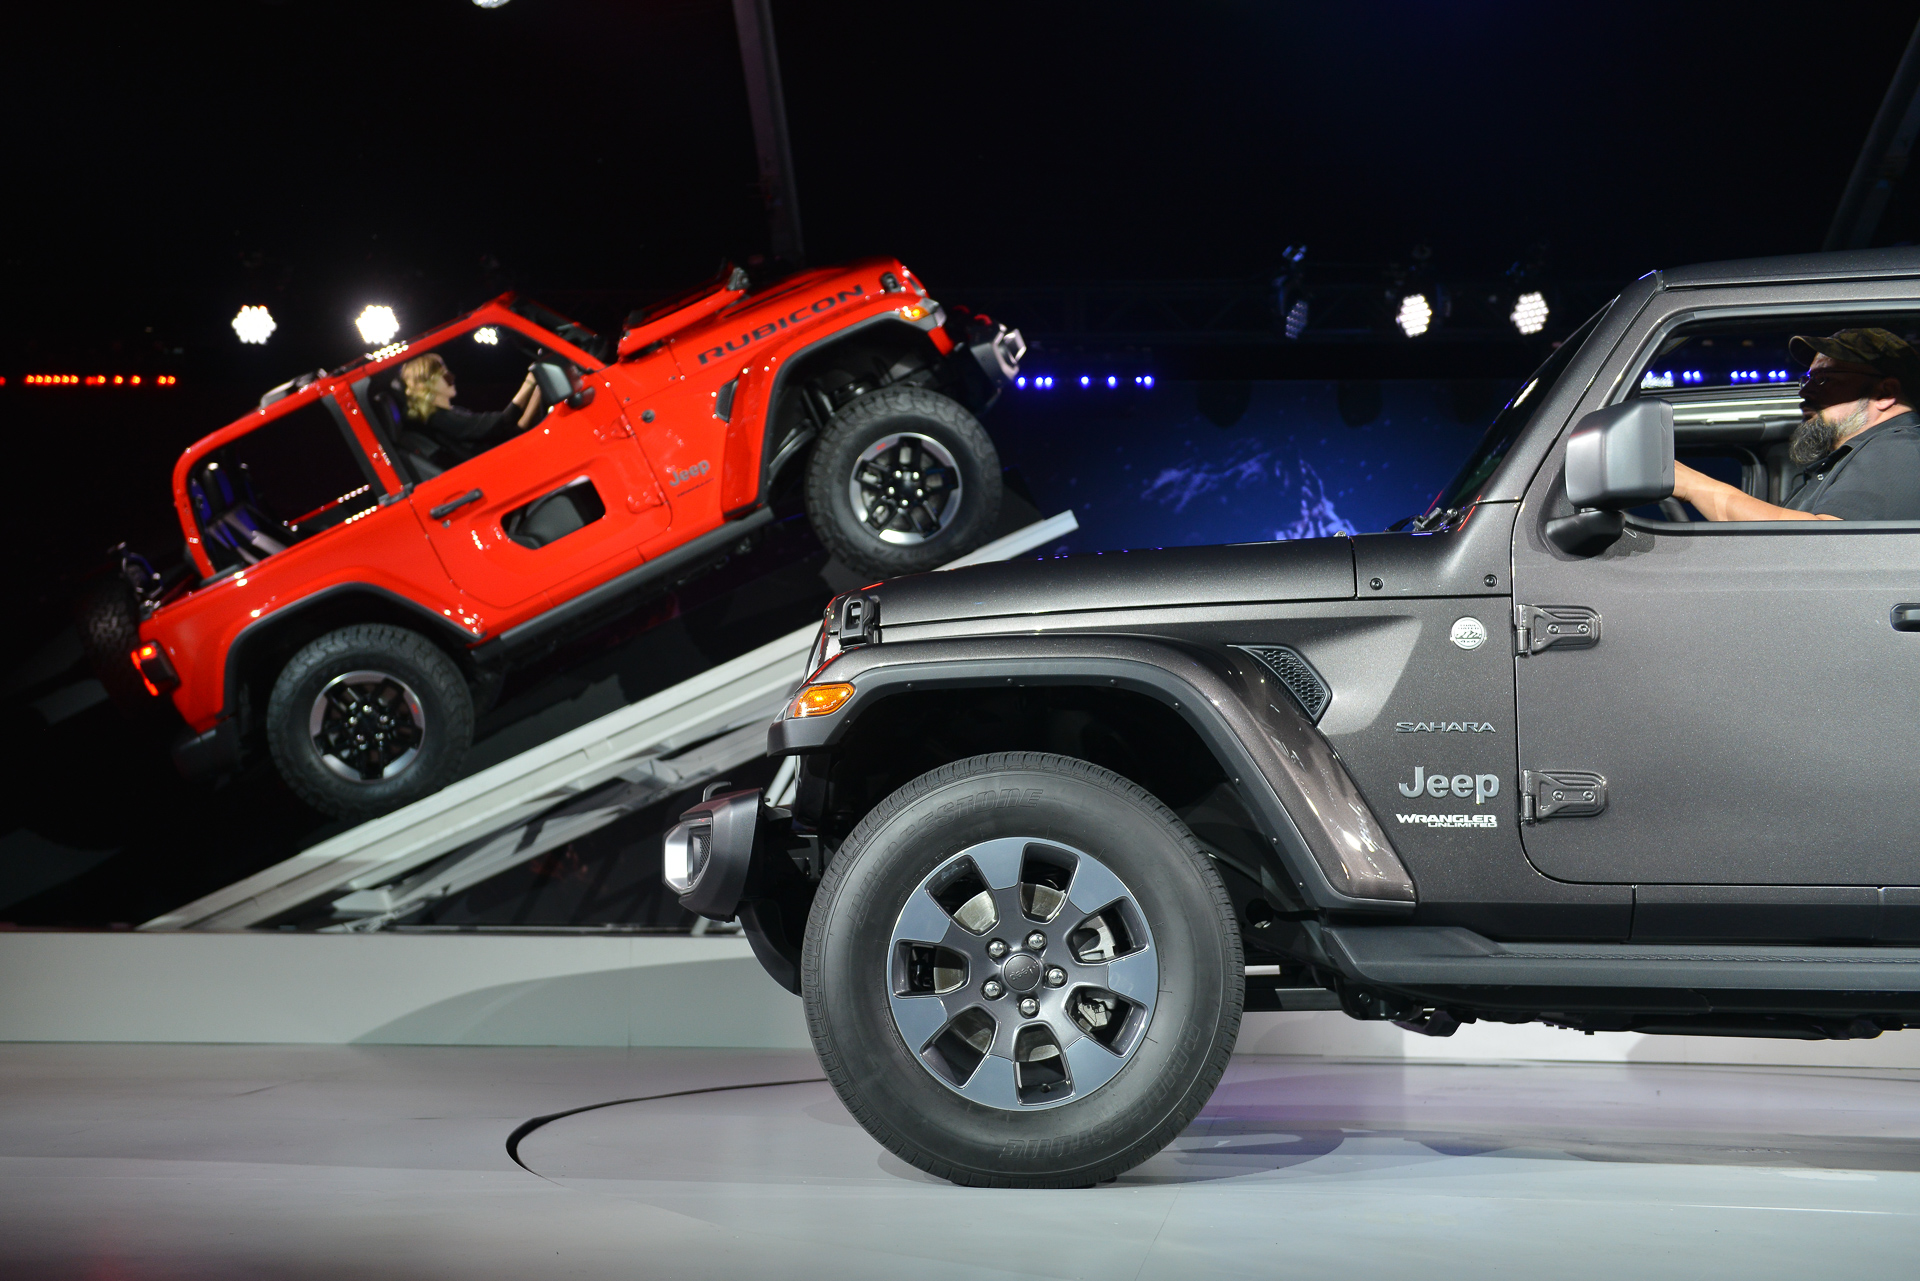 Rock is ready to roll: 2018 Jeep Wrangler video preview